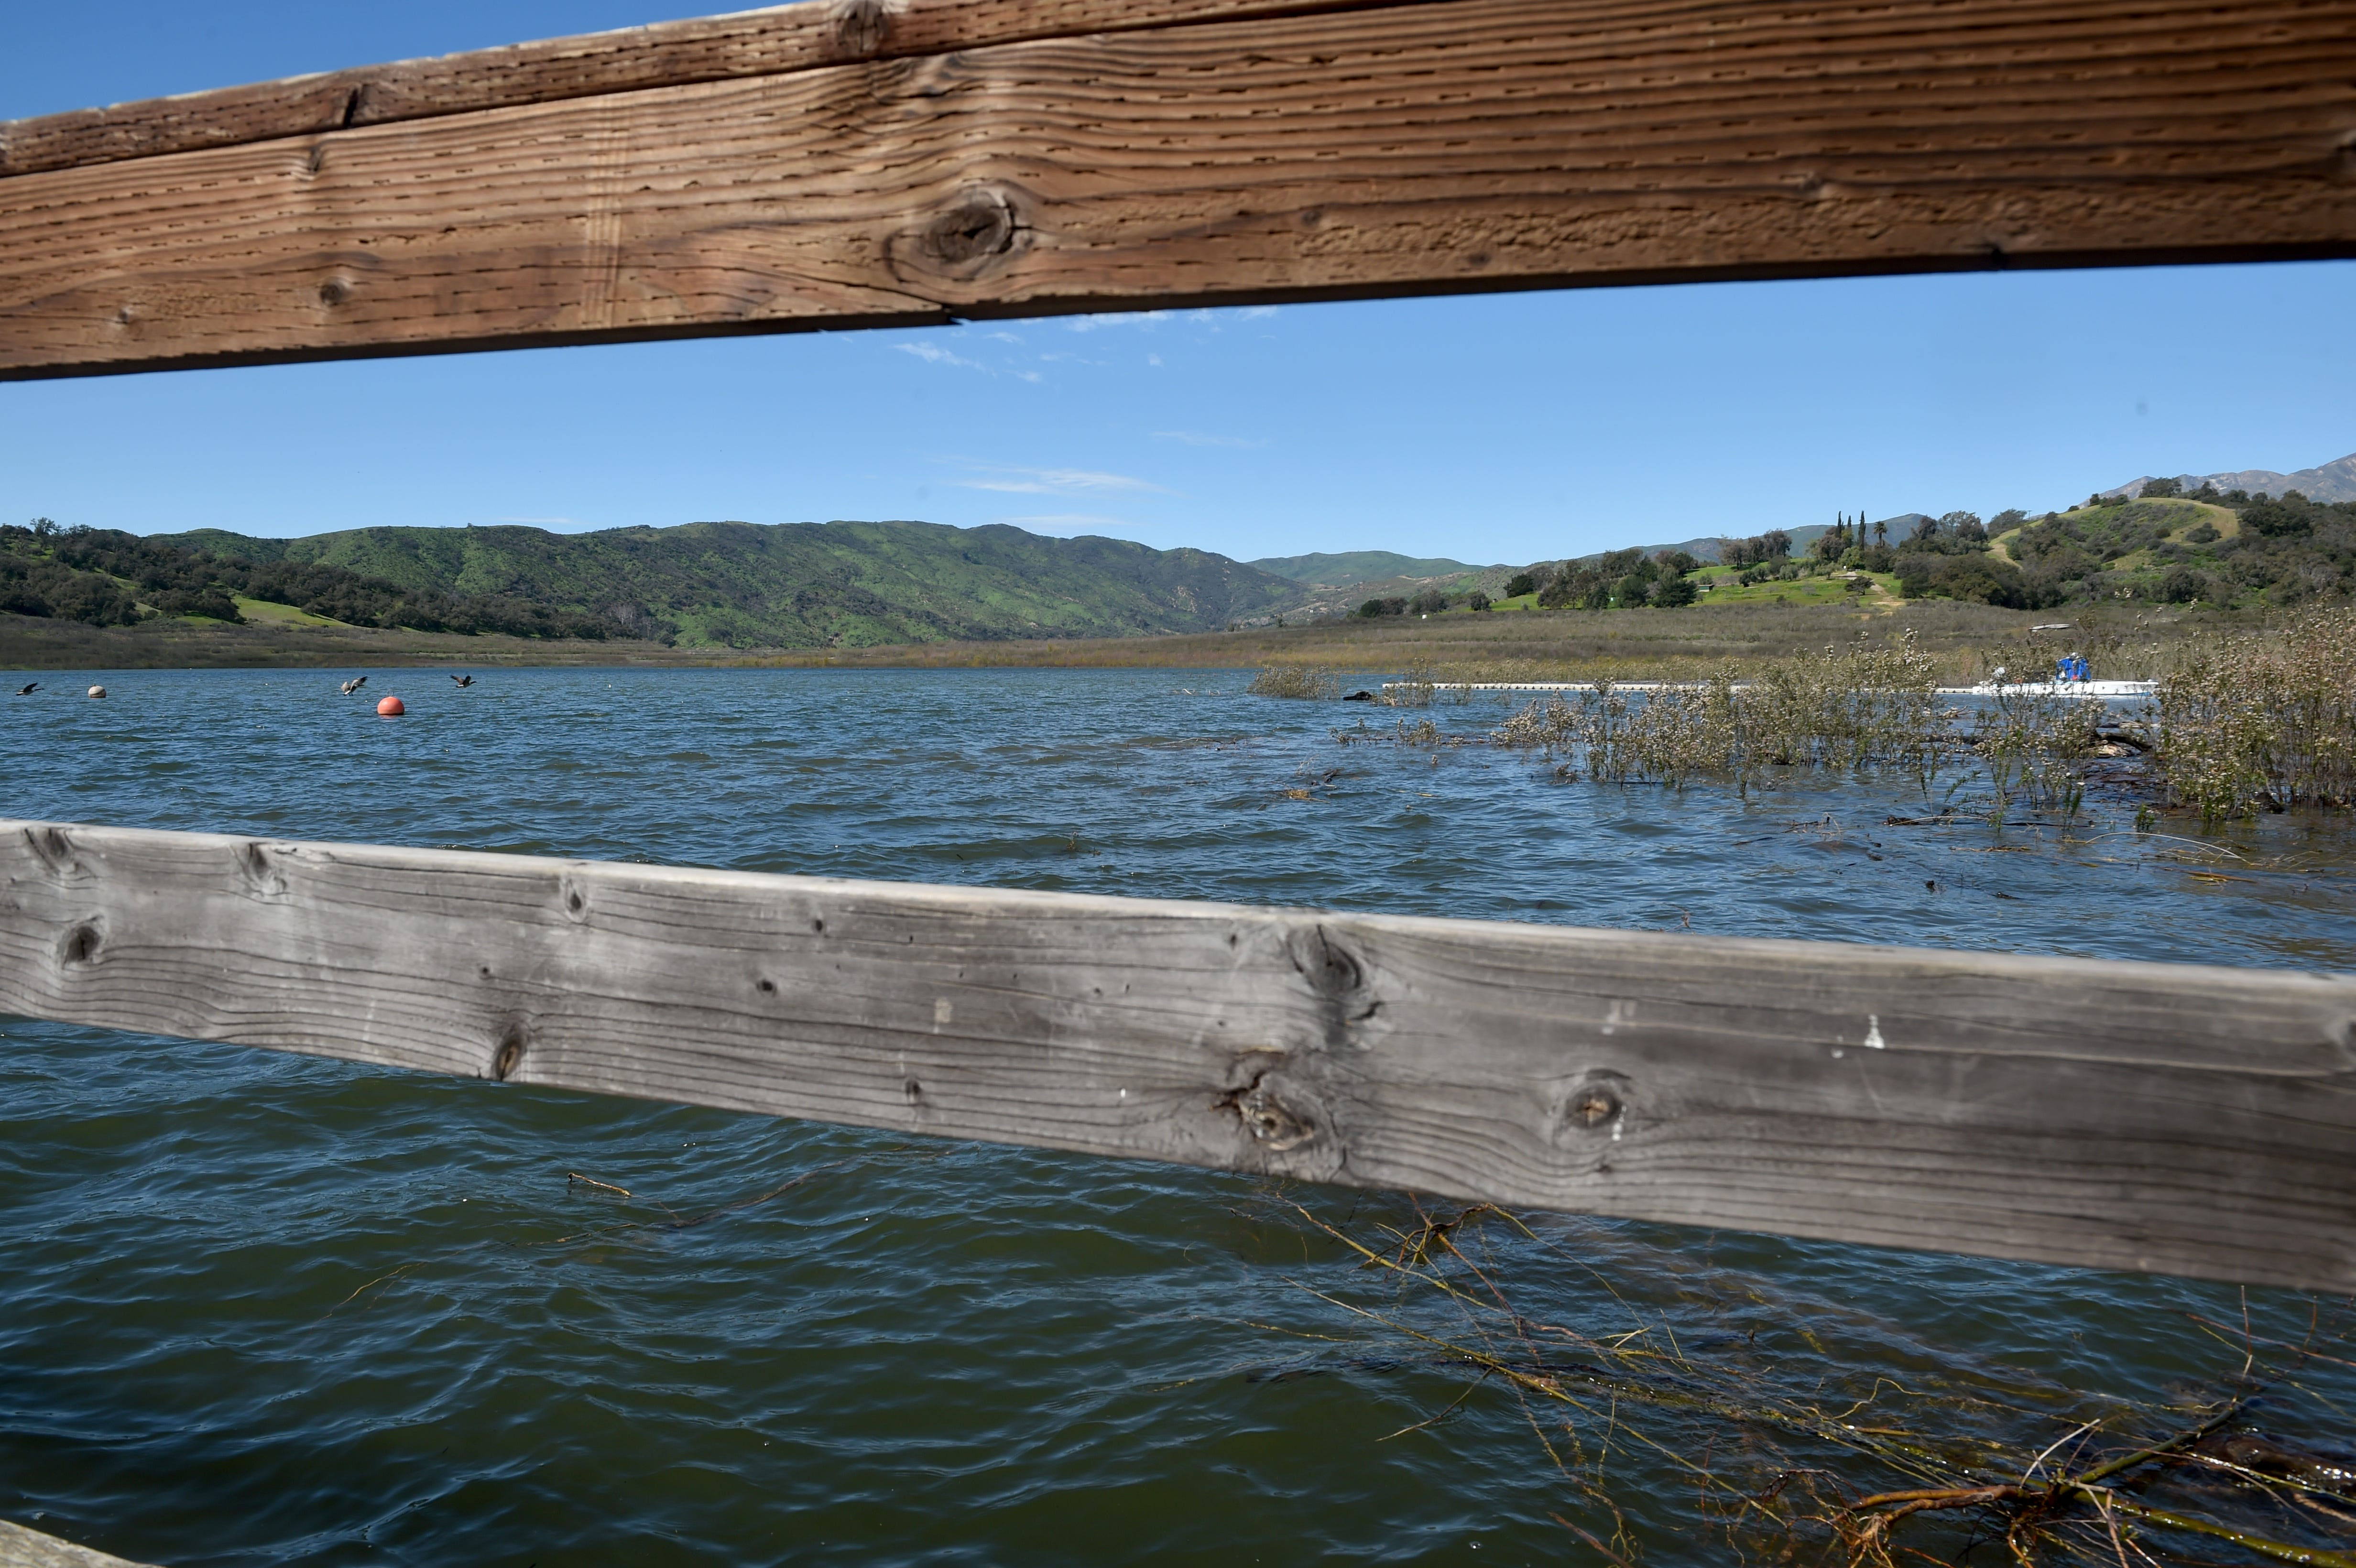 Here's what Lake Casitas looks like after the winter storms